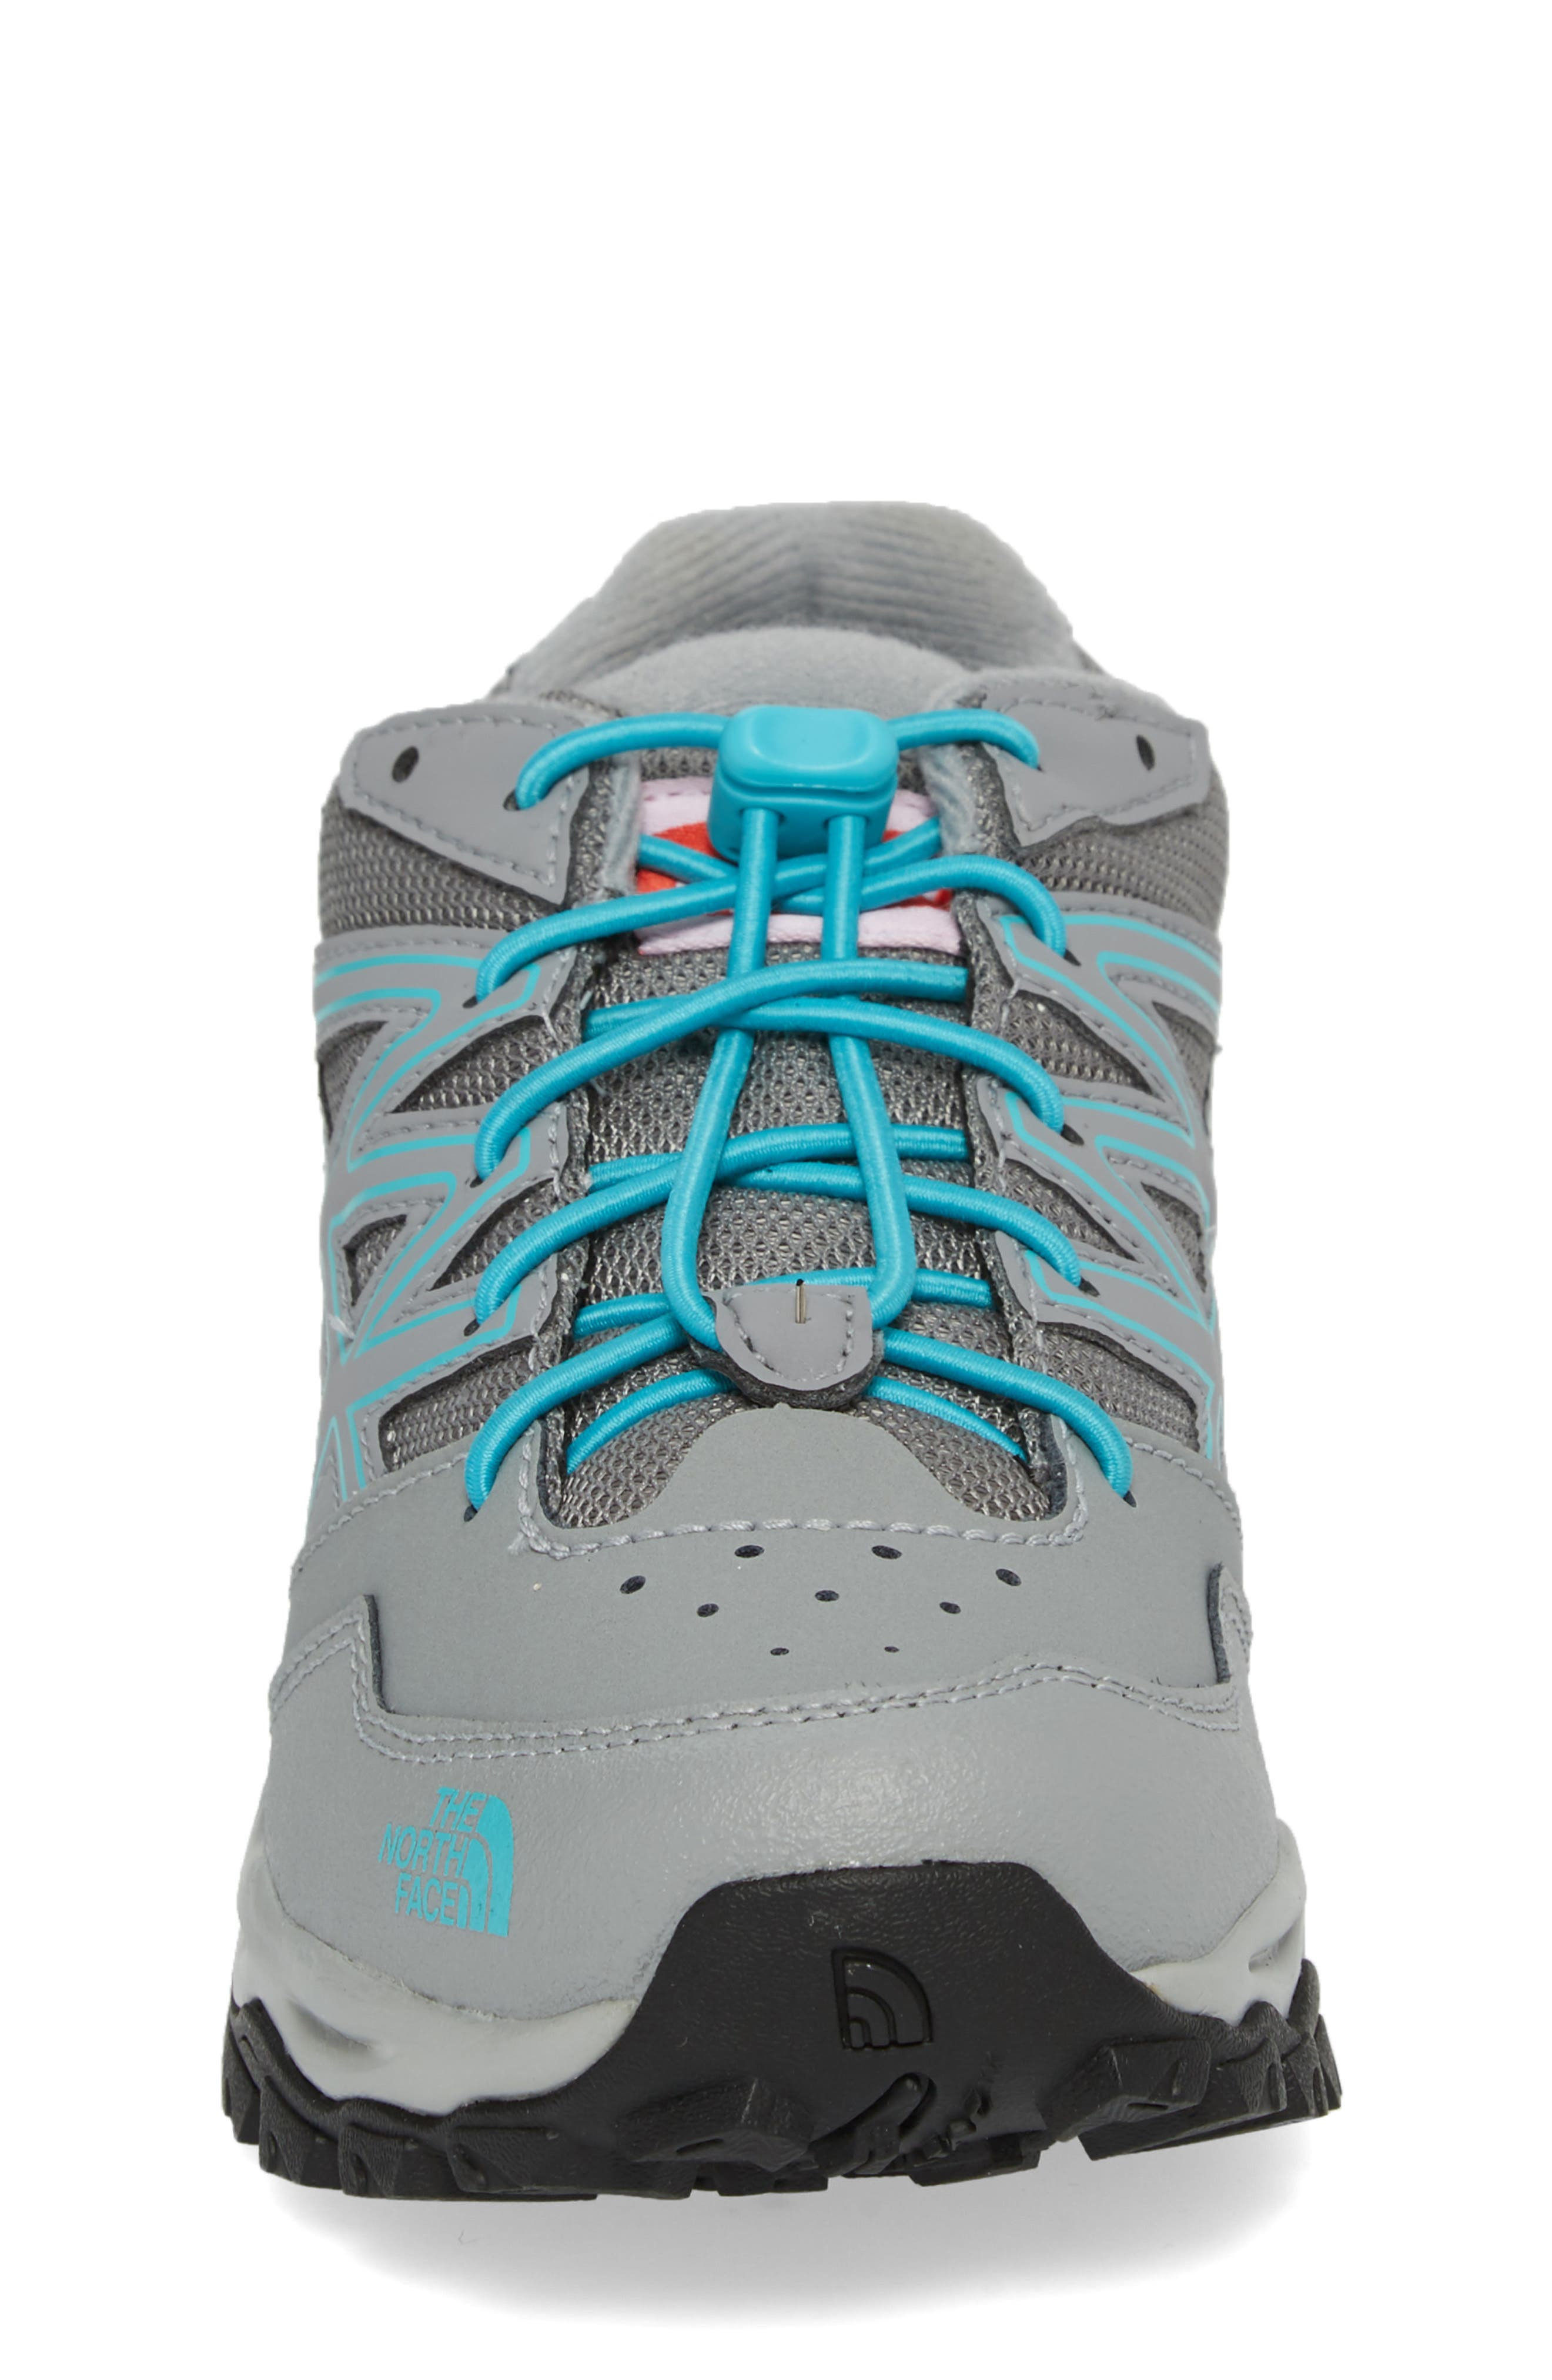 Hedgehog Hiker Boot,                             Alternate thumbnail 4, color,                             Griffin Grey/ Blue Curacao